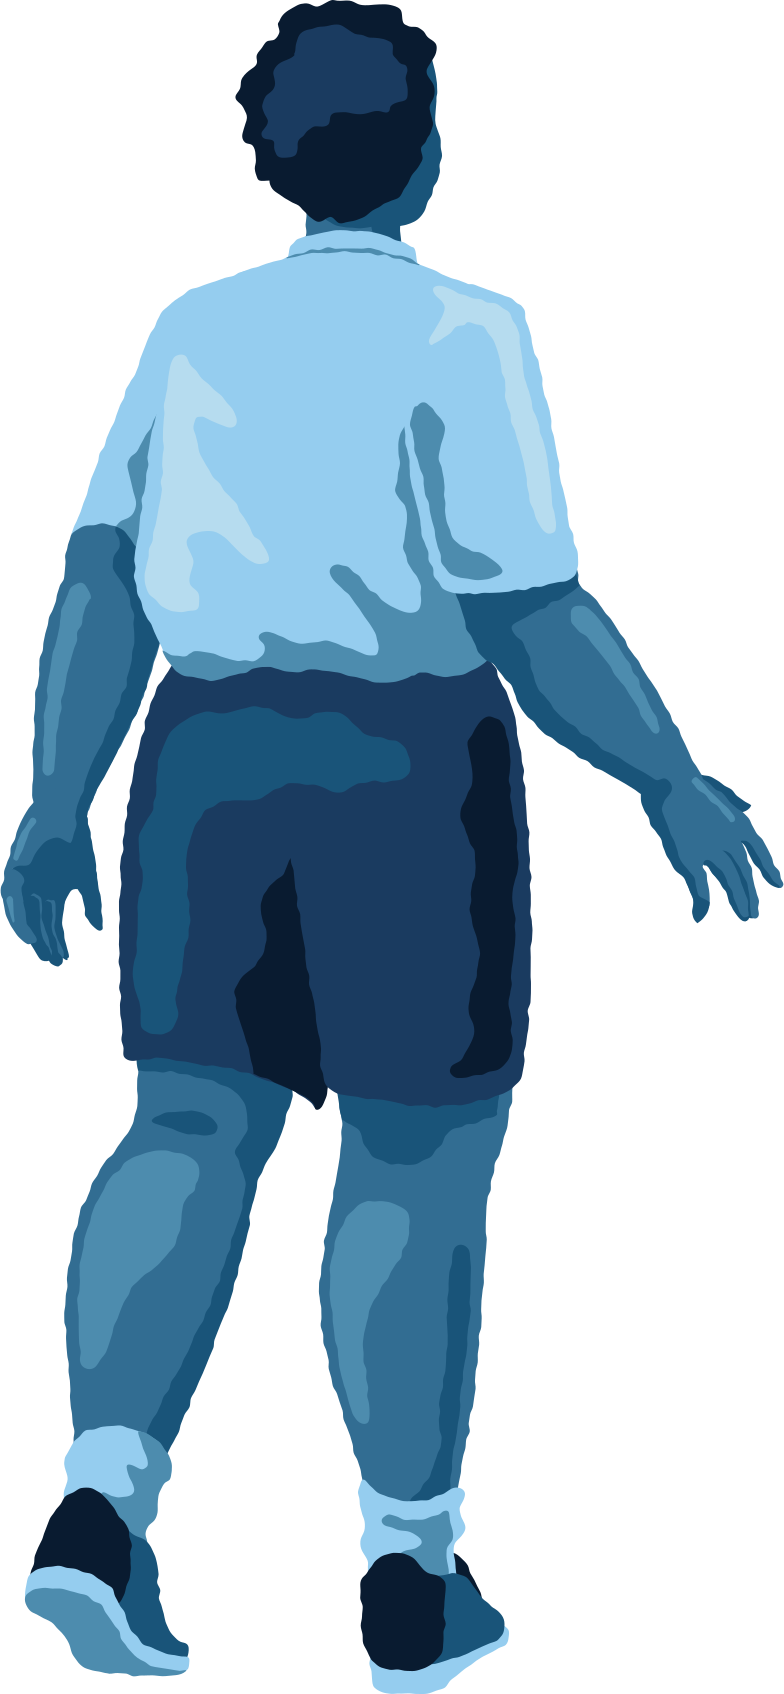 style chubby man standing back Vector images in PNG and SVG | Icons8 Illustrations